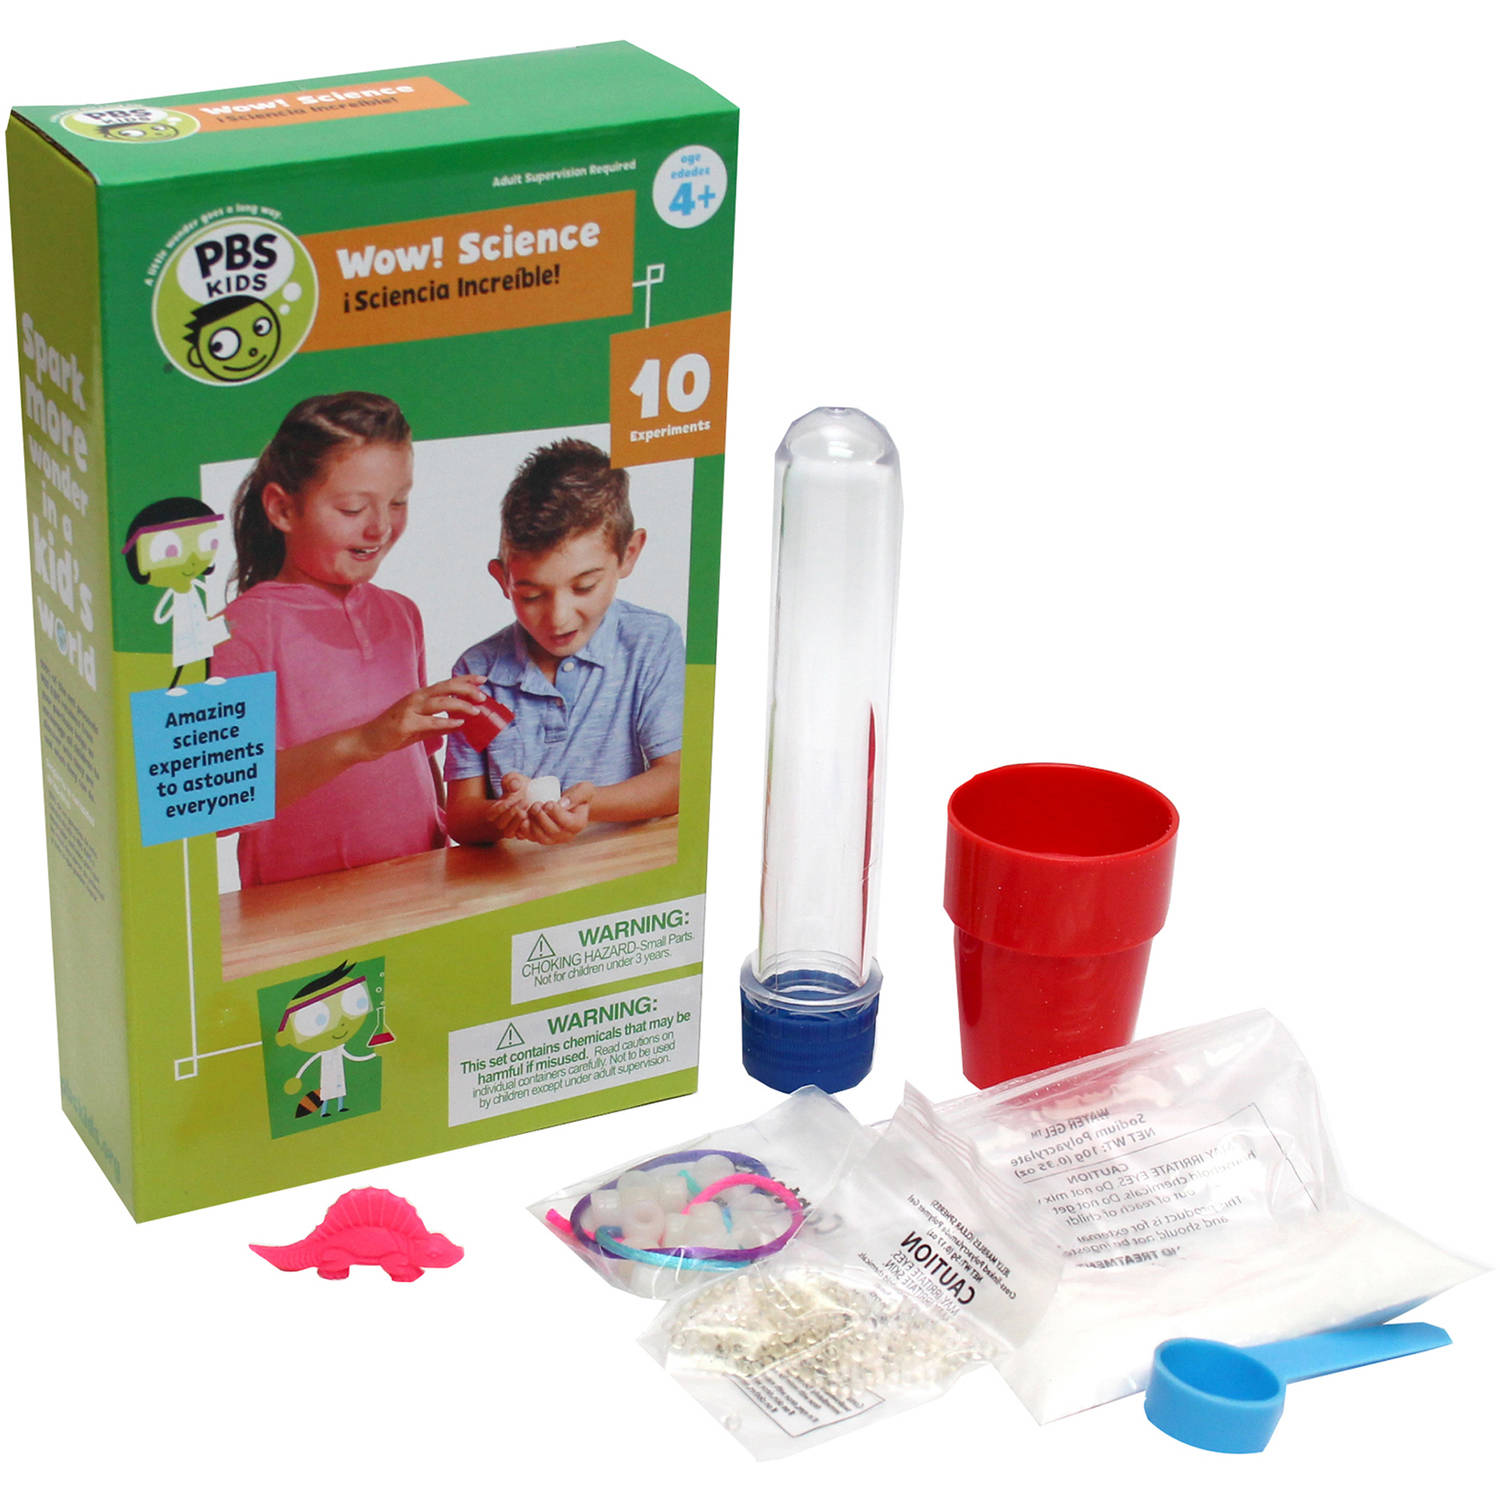 PBS Kids Wow! Science Kit